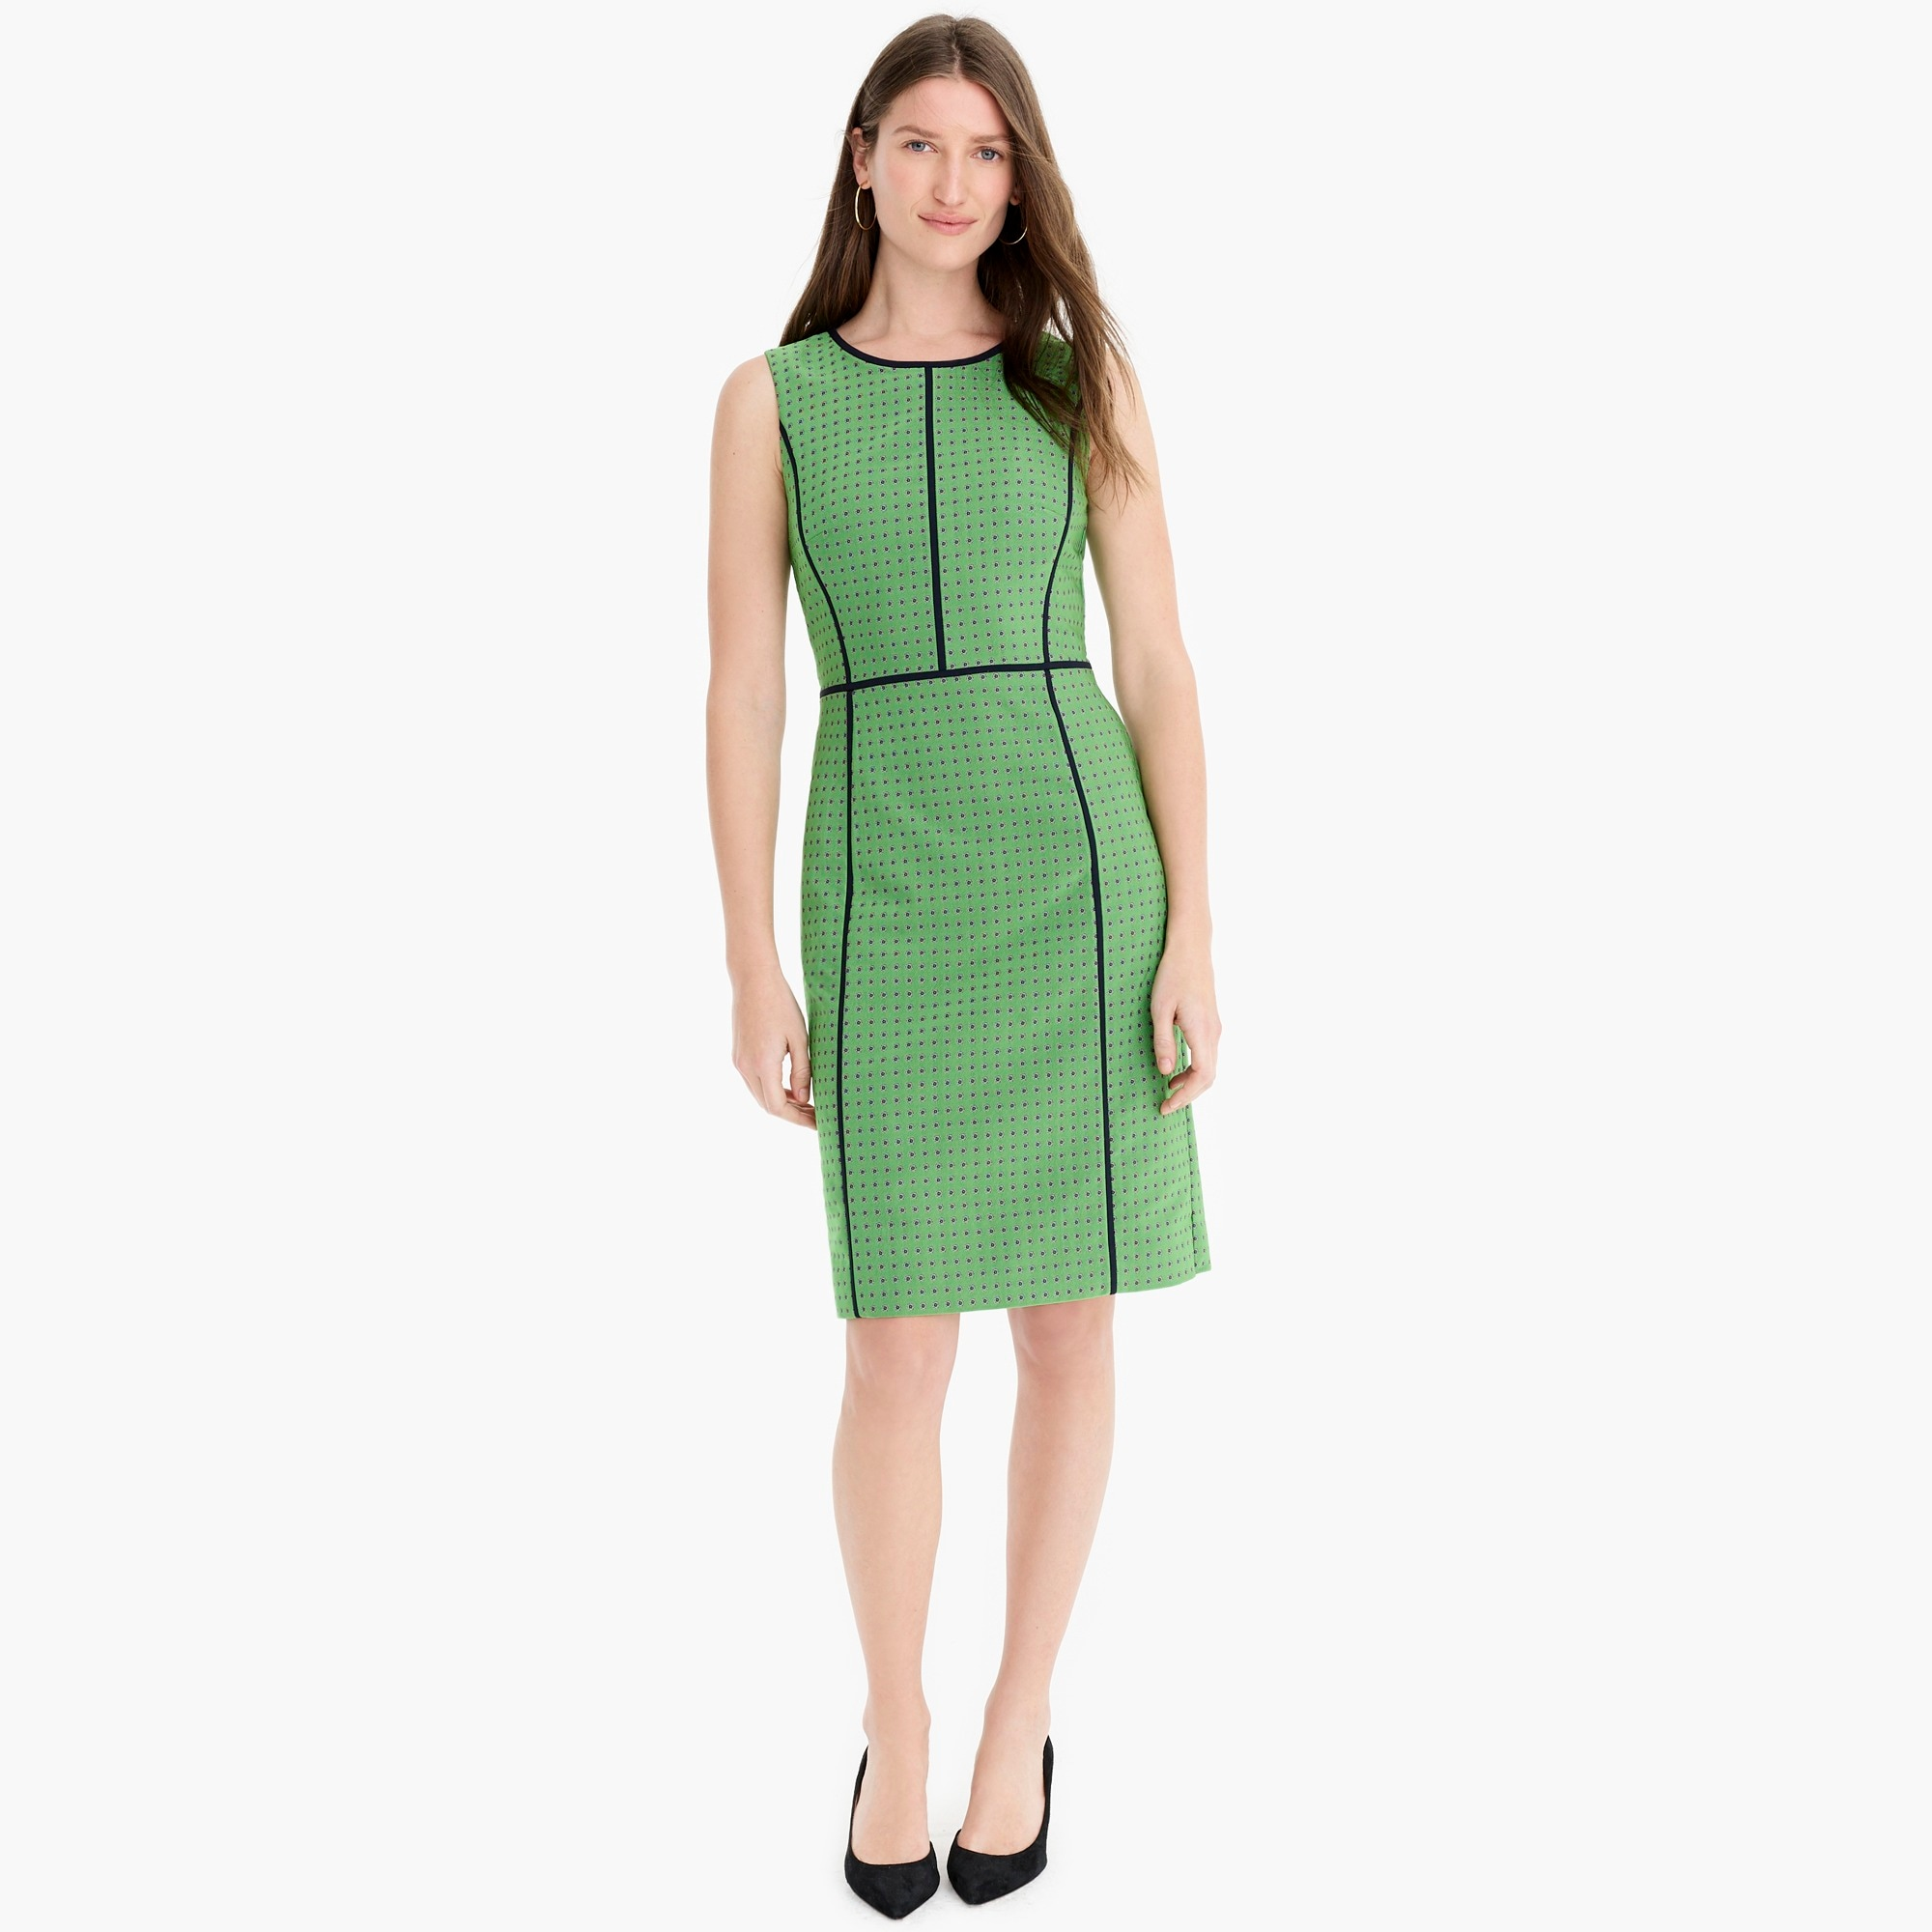 Image 3 for Petite paneled sheath dress